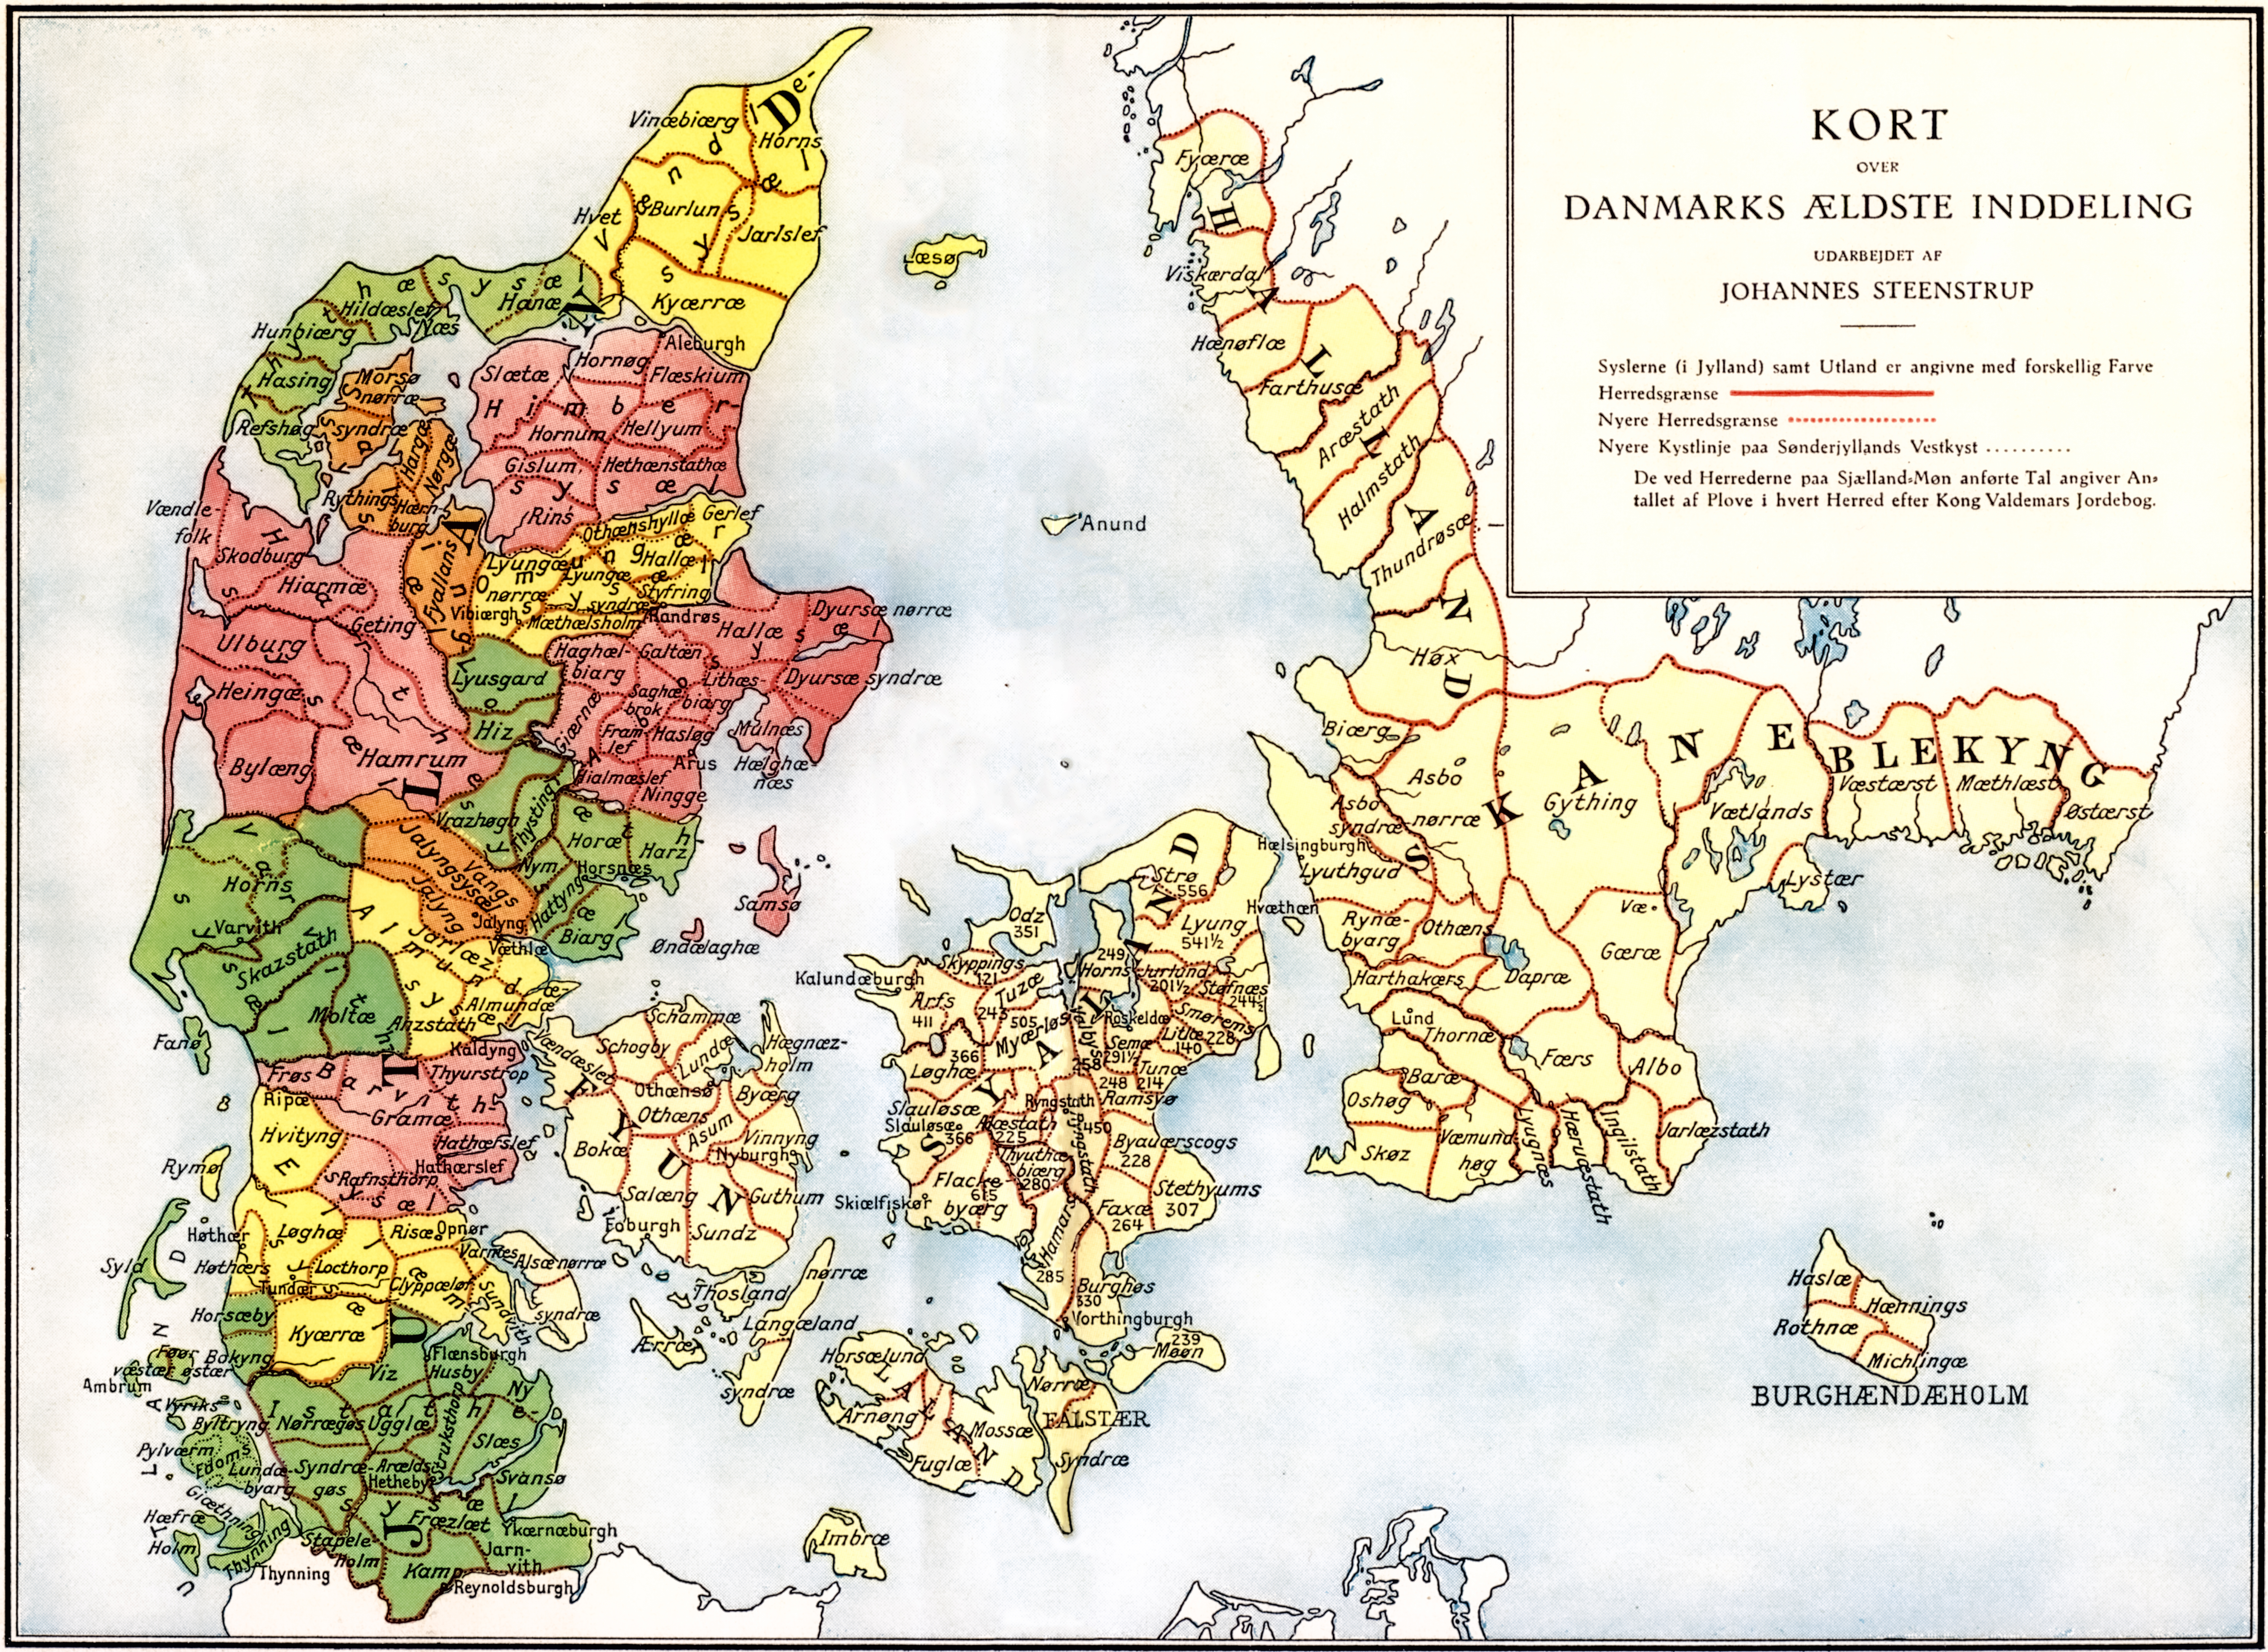 Map of medieval Denmark, showing herreder and sysler. The entire country was divided into herreder, shown outlined in red. Coloured areas show Jutland's syssel divisions. Zealand's four ecclesiastic sysler are not included.